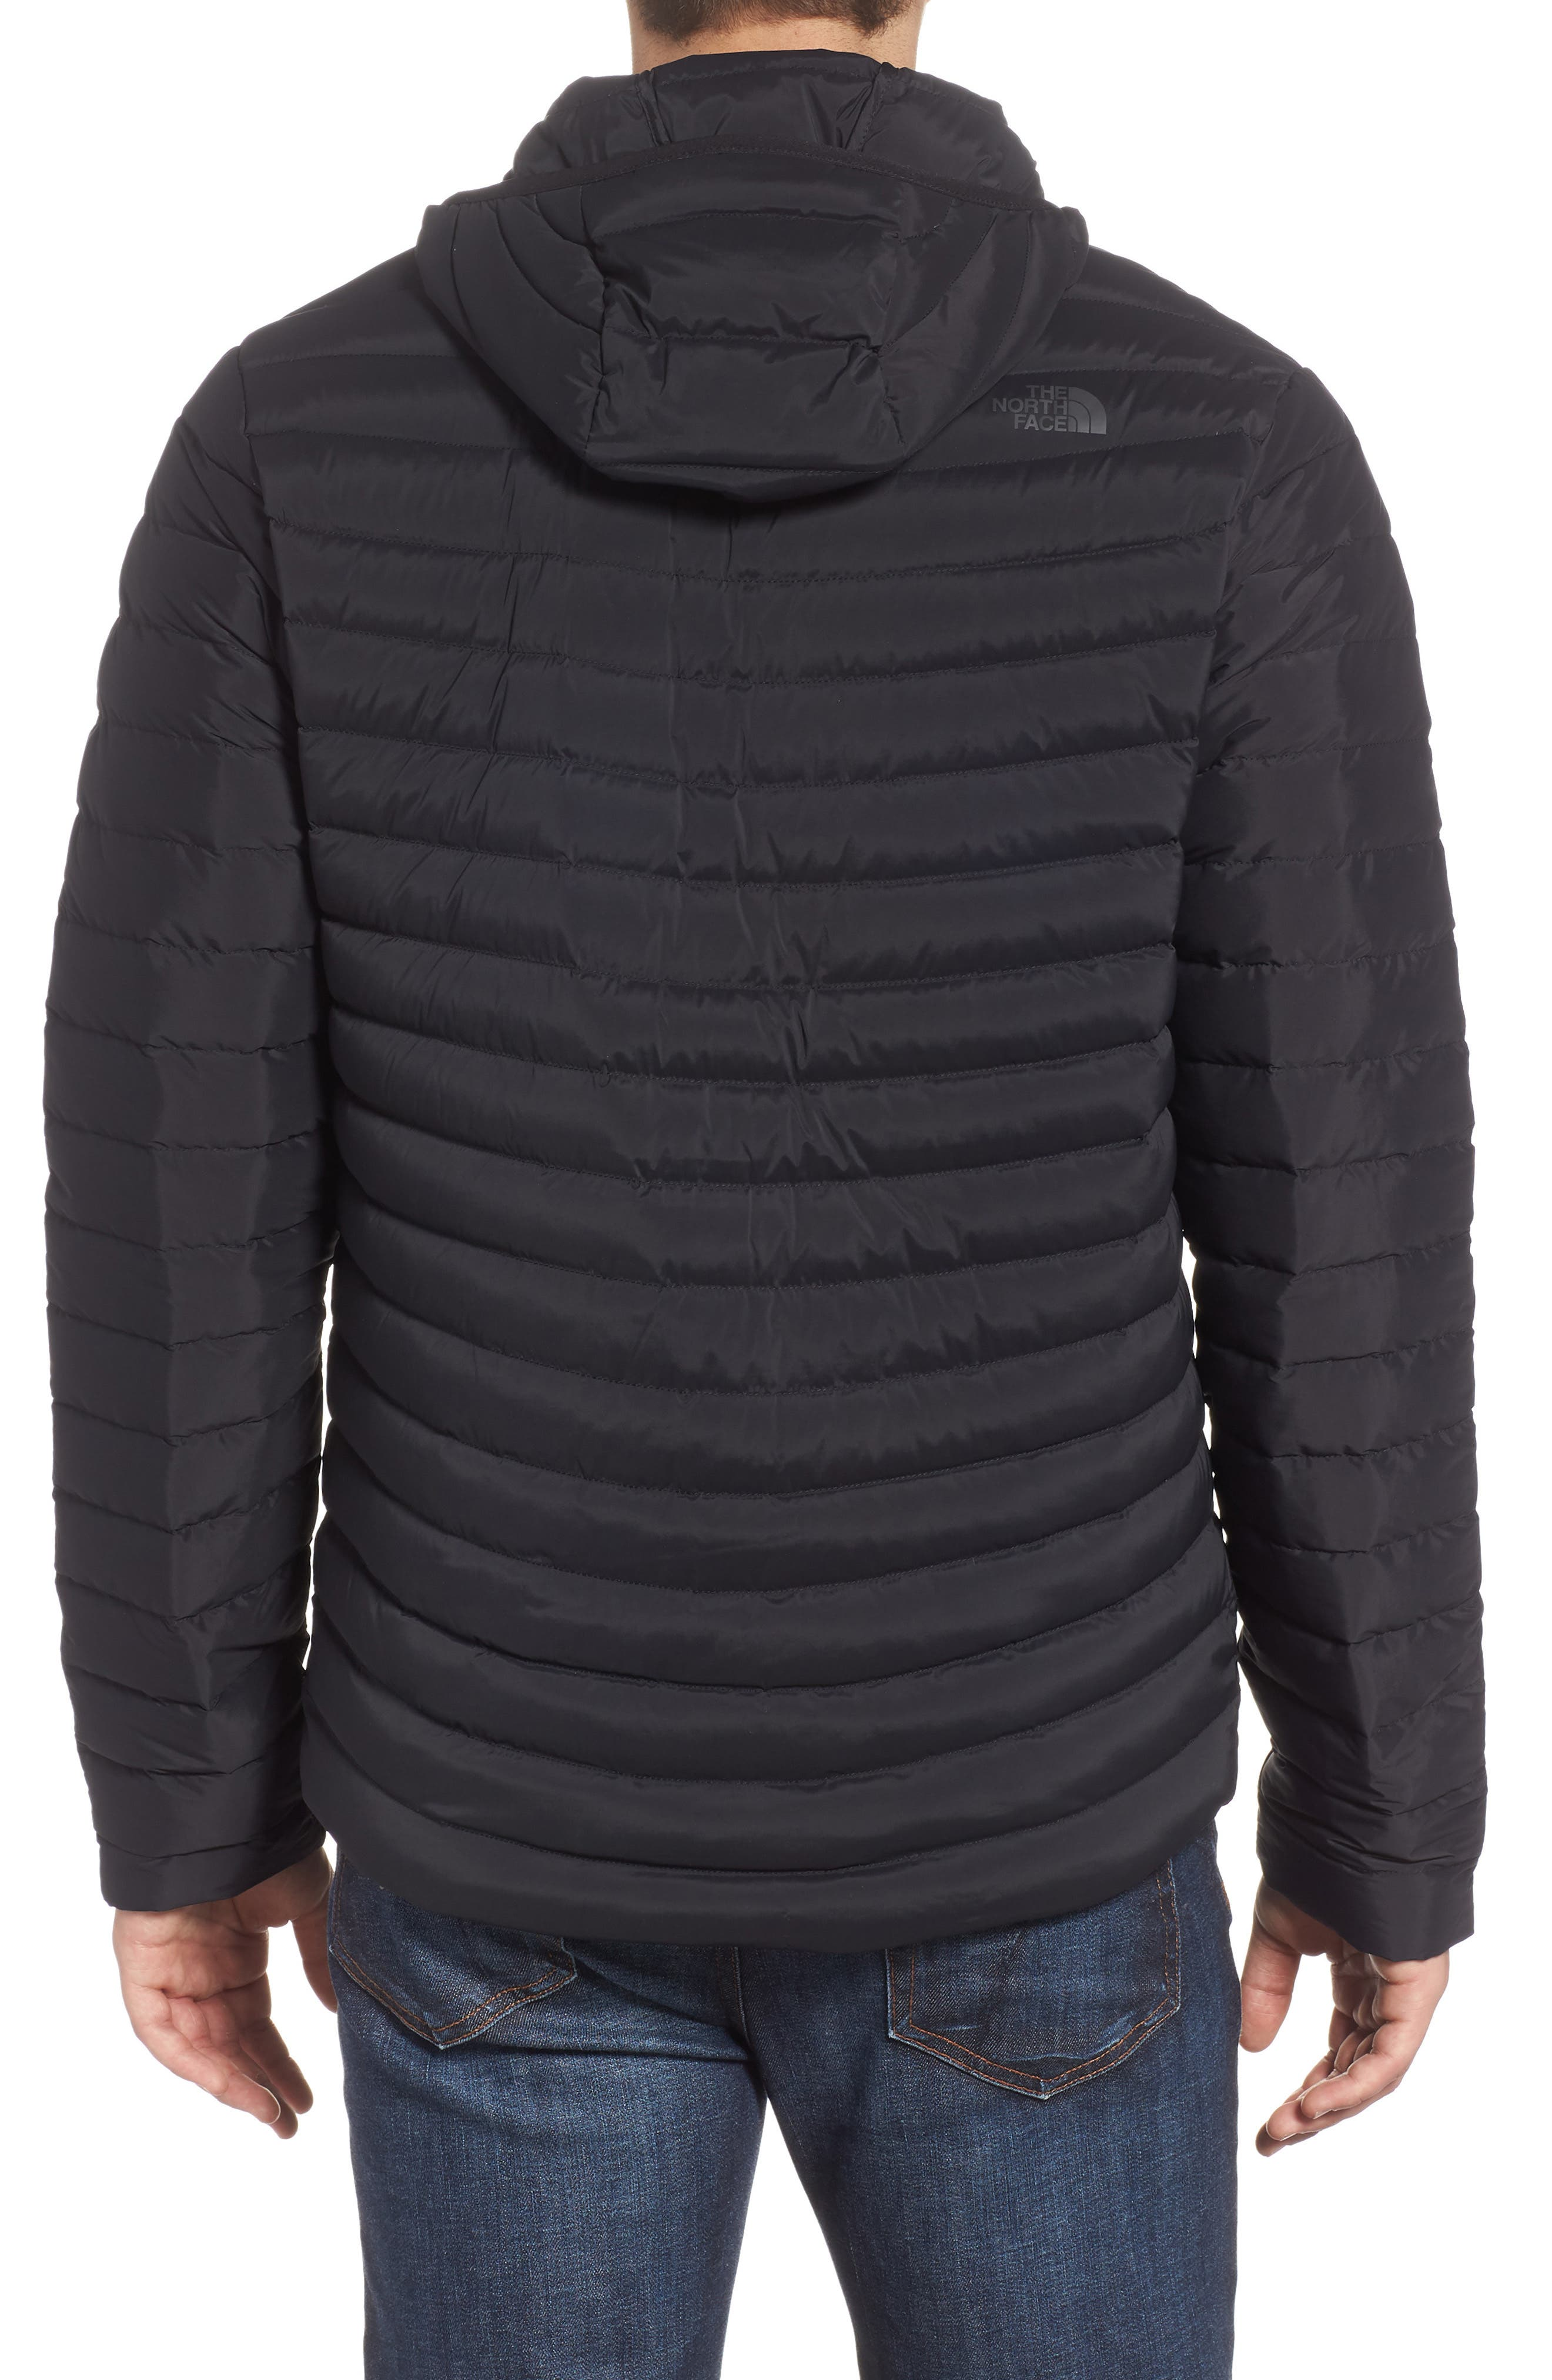 THE NORTH FACE, Packable Stretch Down Hooded Jacket, Alternate thumbnail 2, color, 001